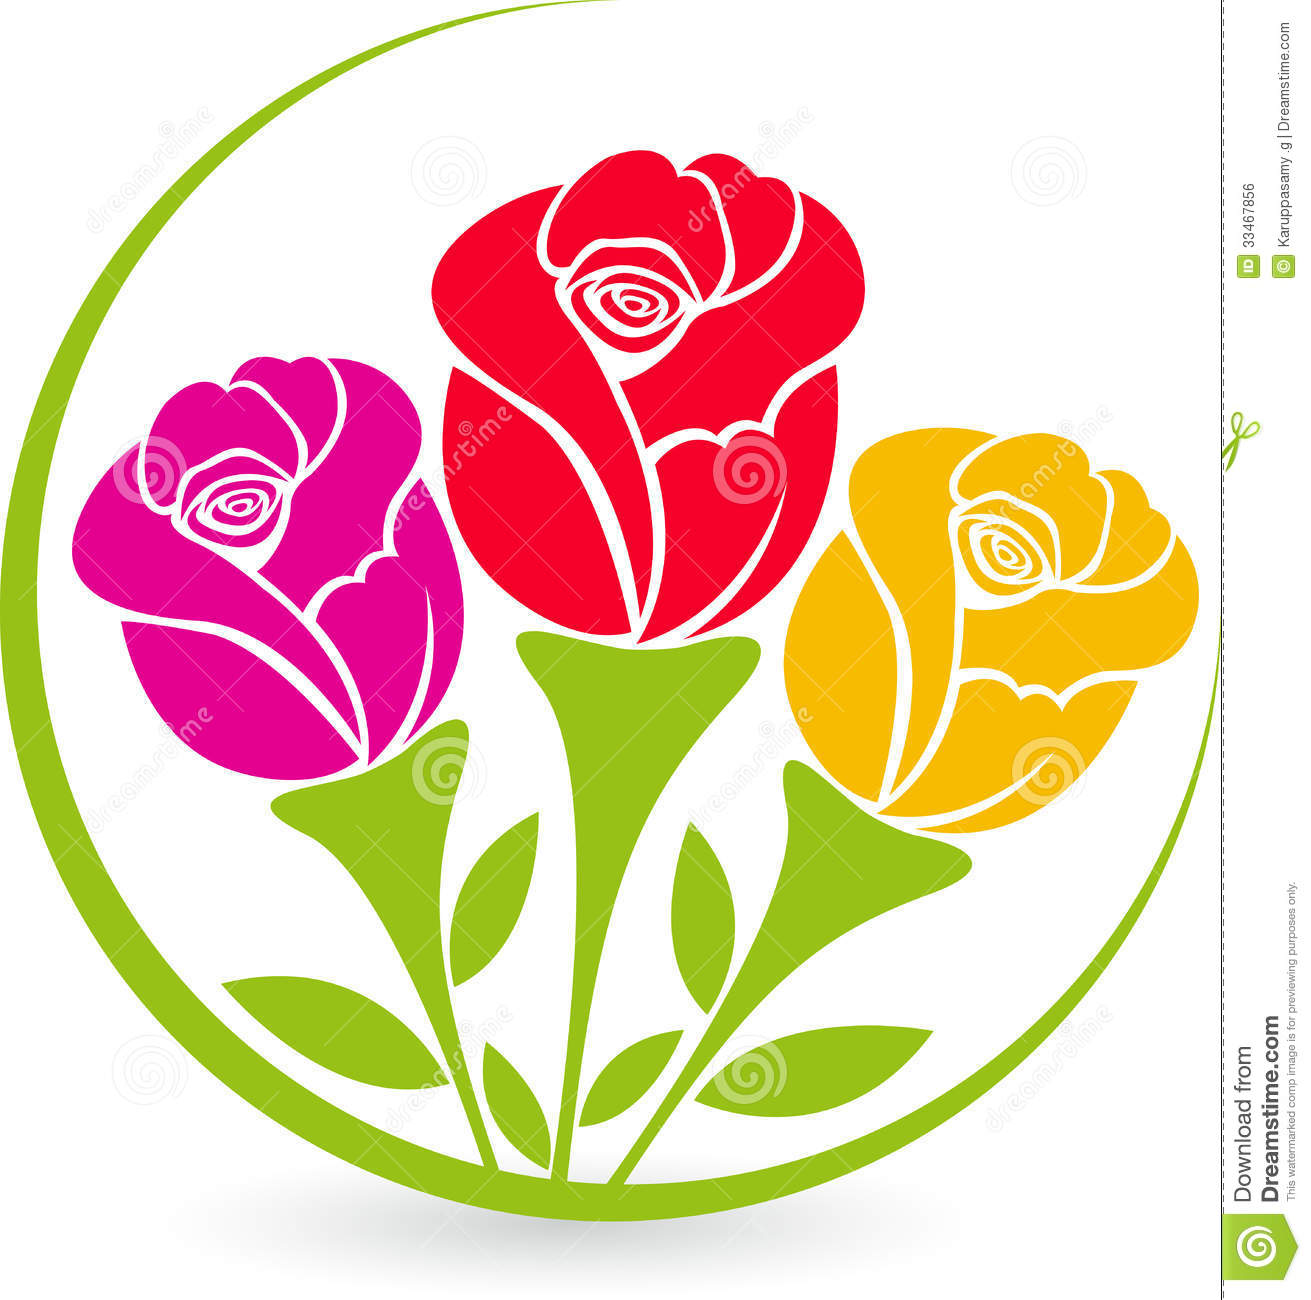 There Roses Logo Royalty Free Stock Image - Image: 33467856